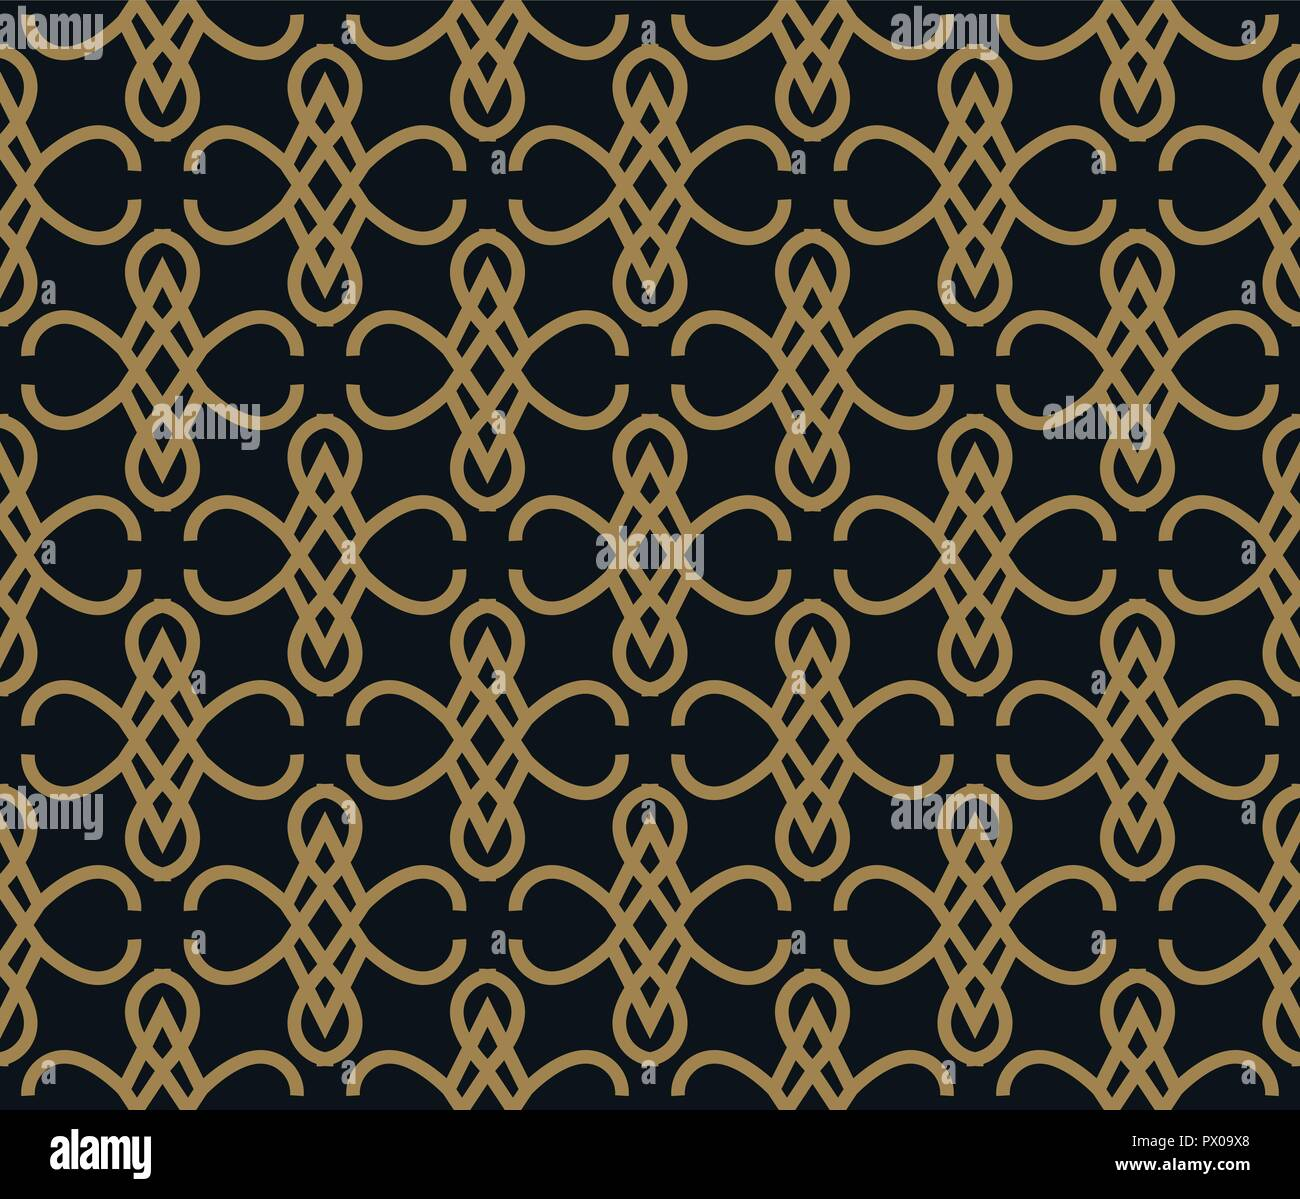 c5acf78391c9 Seamless pattern of intersecting thin gold lines on black background.  Abstract seamless ornament. -